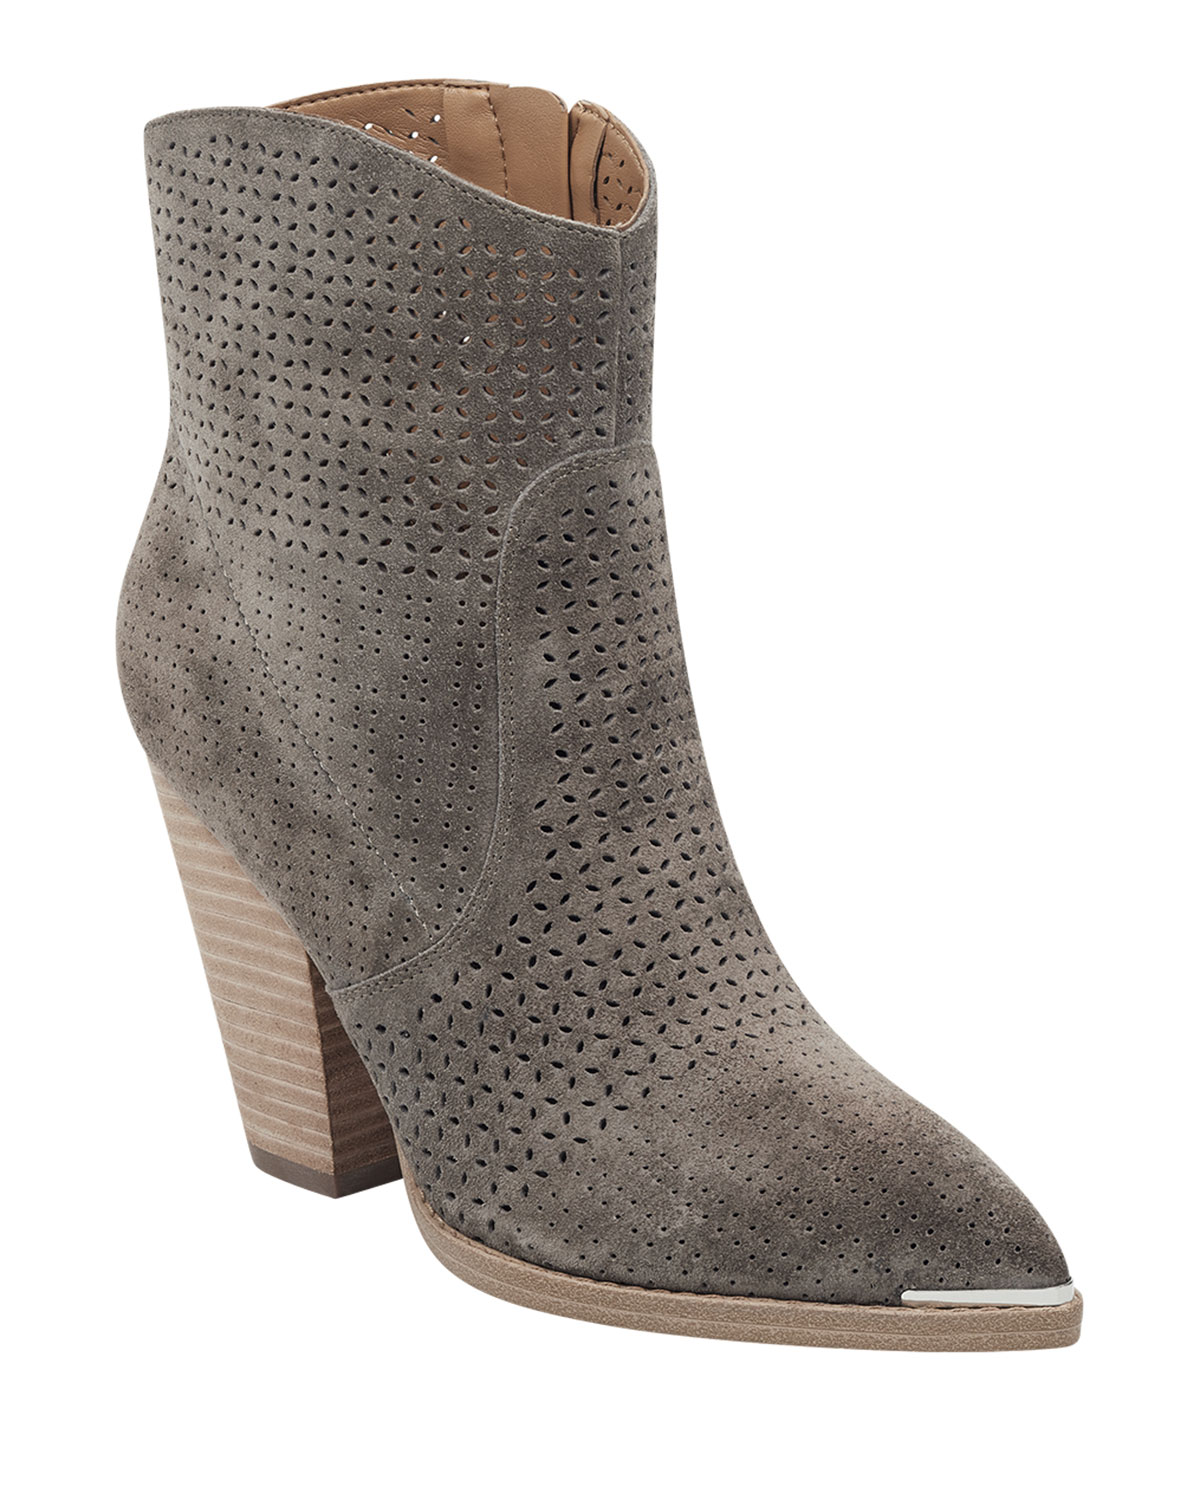 a3b2af70bda Marc Fisher LTD Daire Perforated Suede Boots